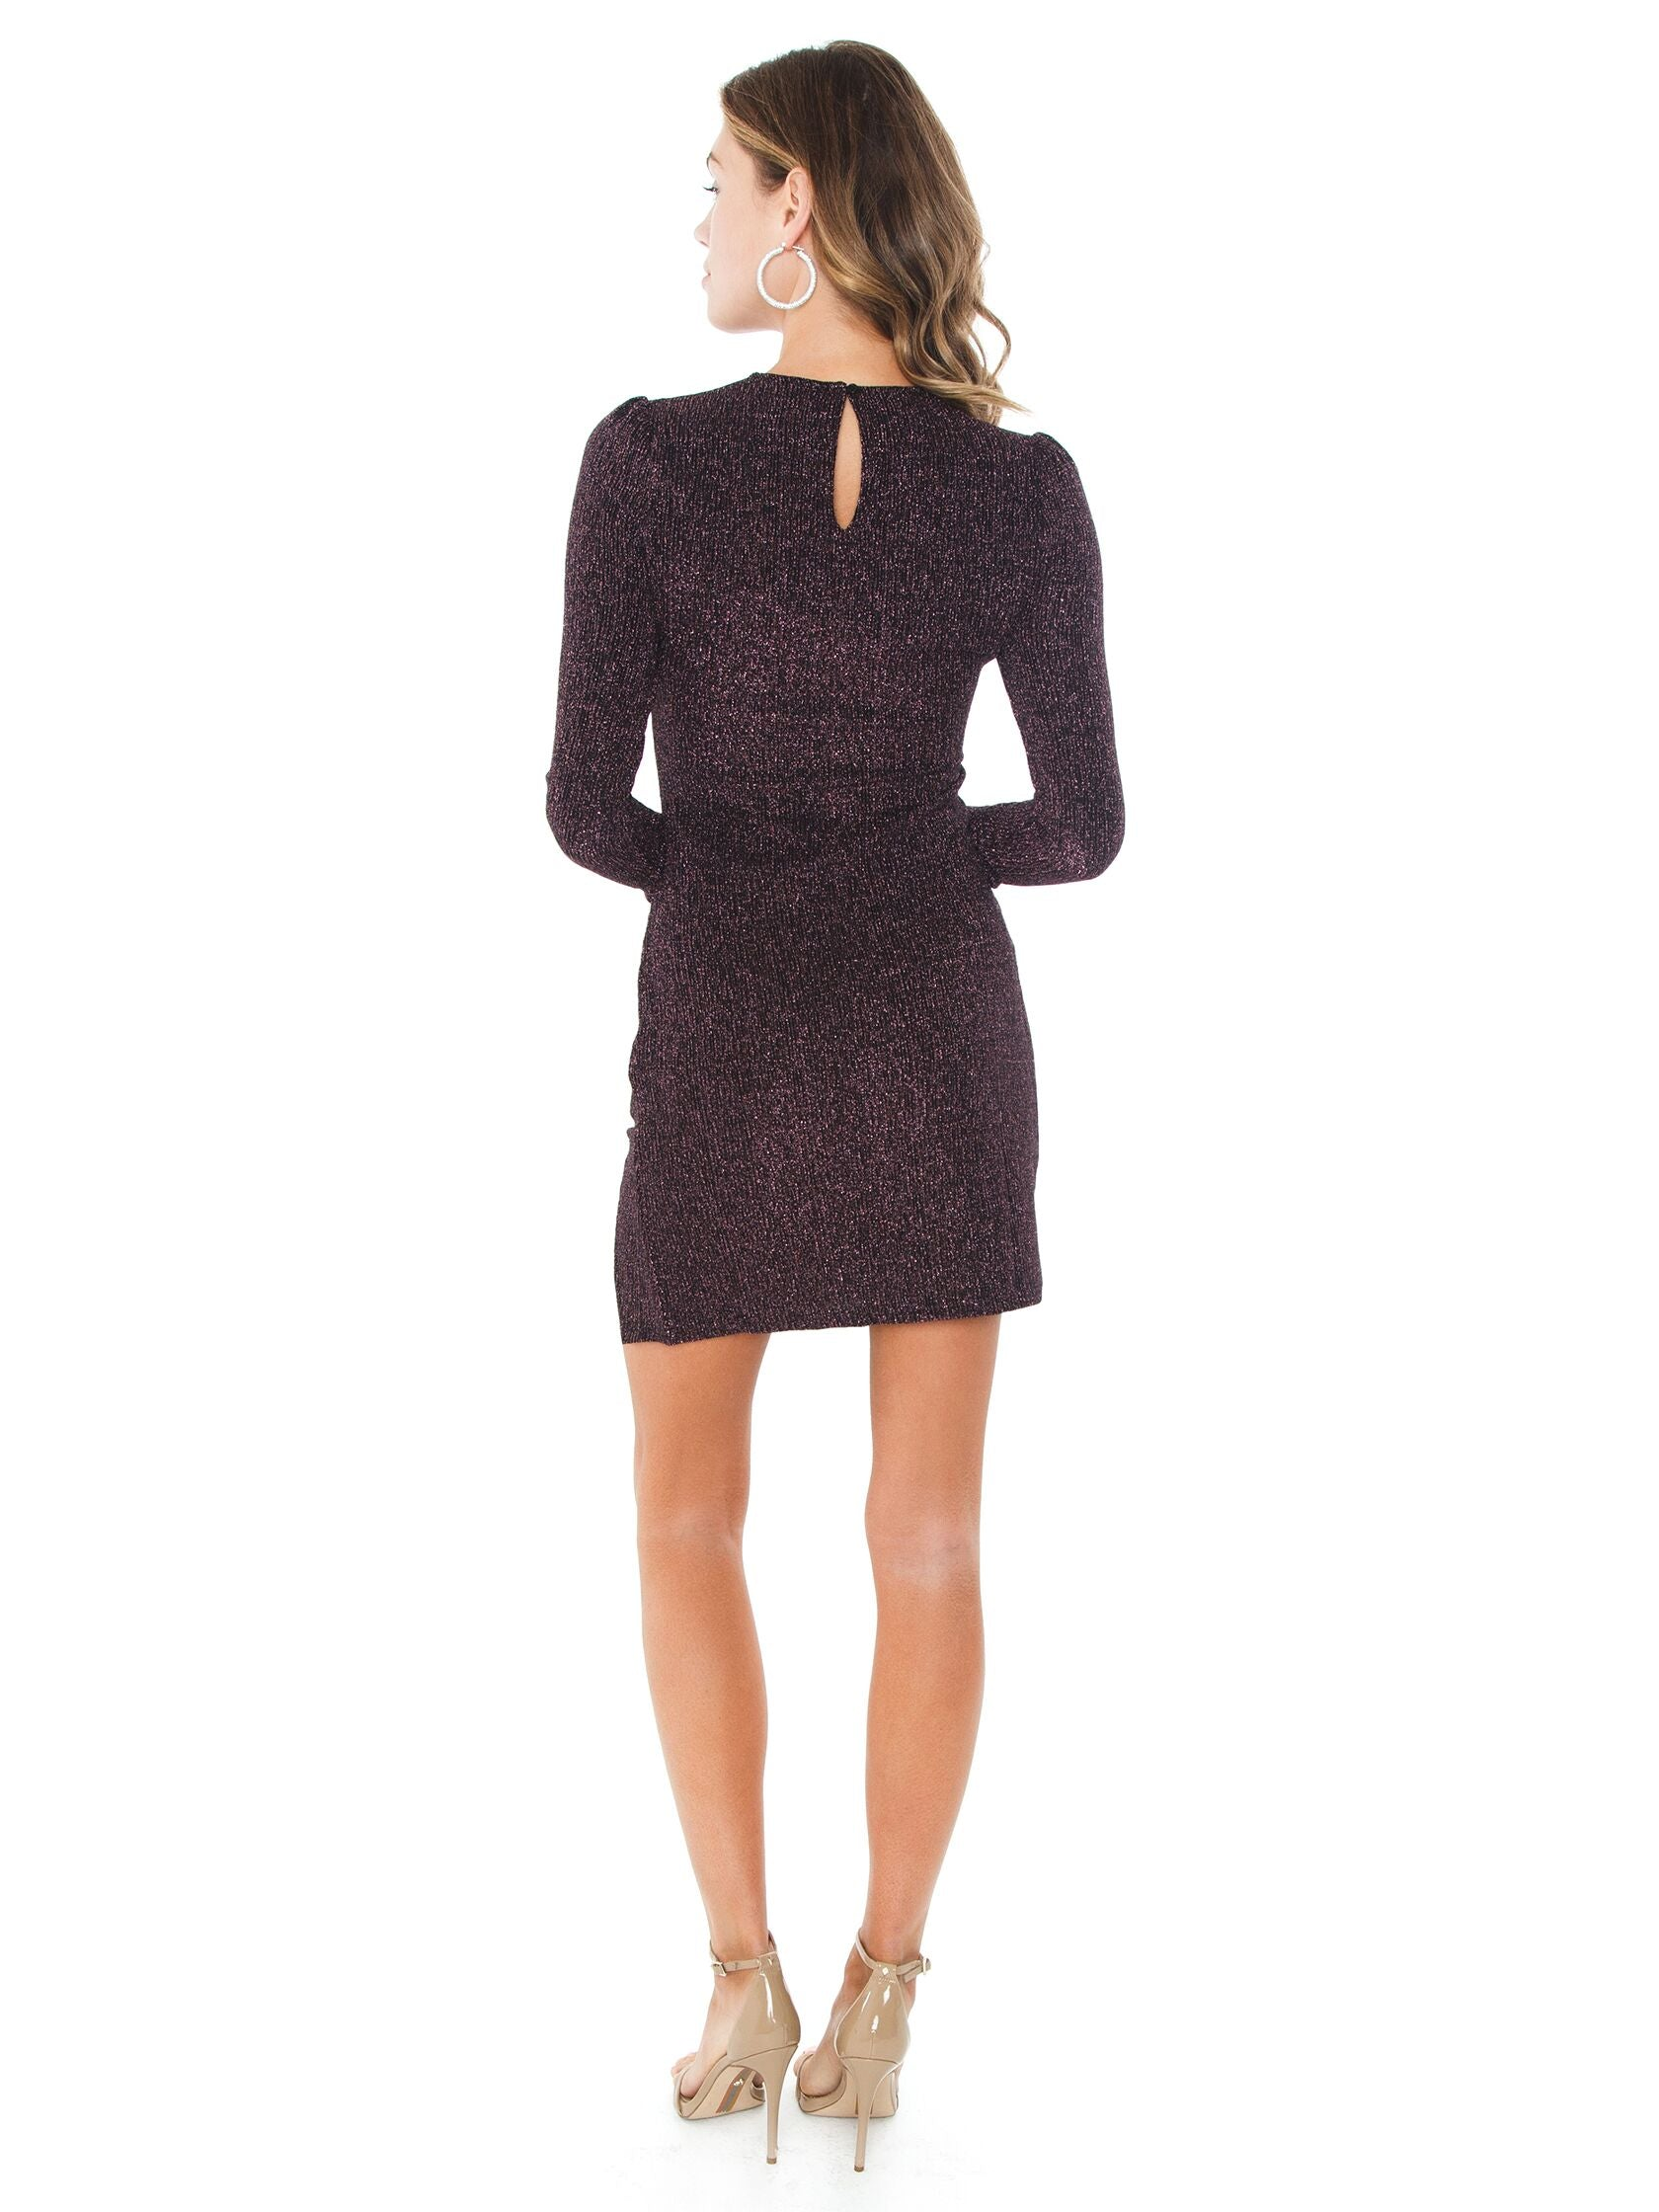 Women wearing a dress rental from MINKPINK called Metallic Texture Mini Dress